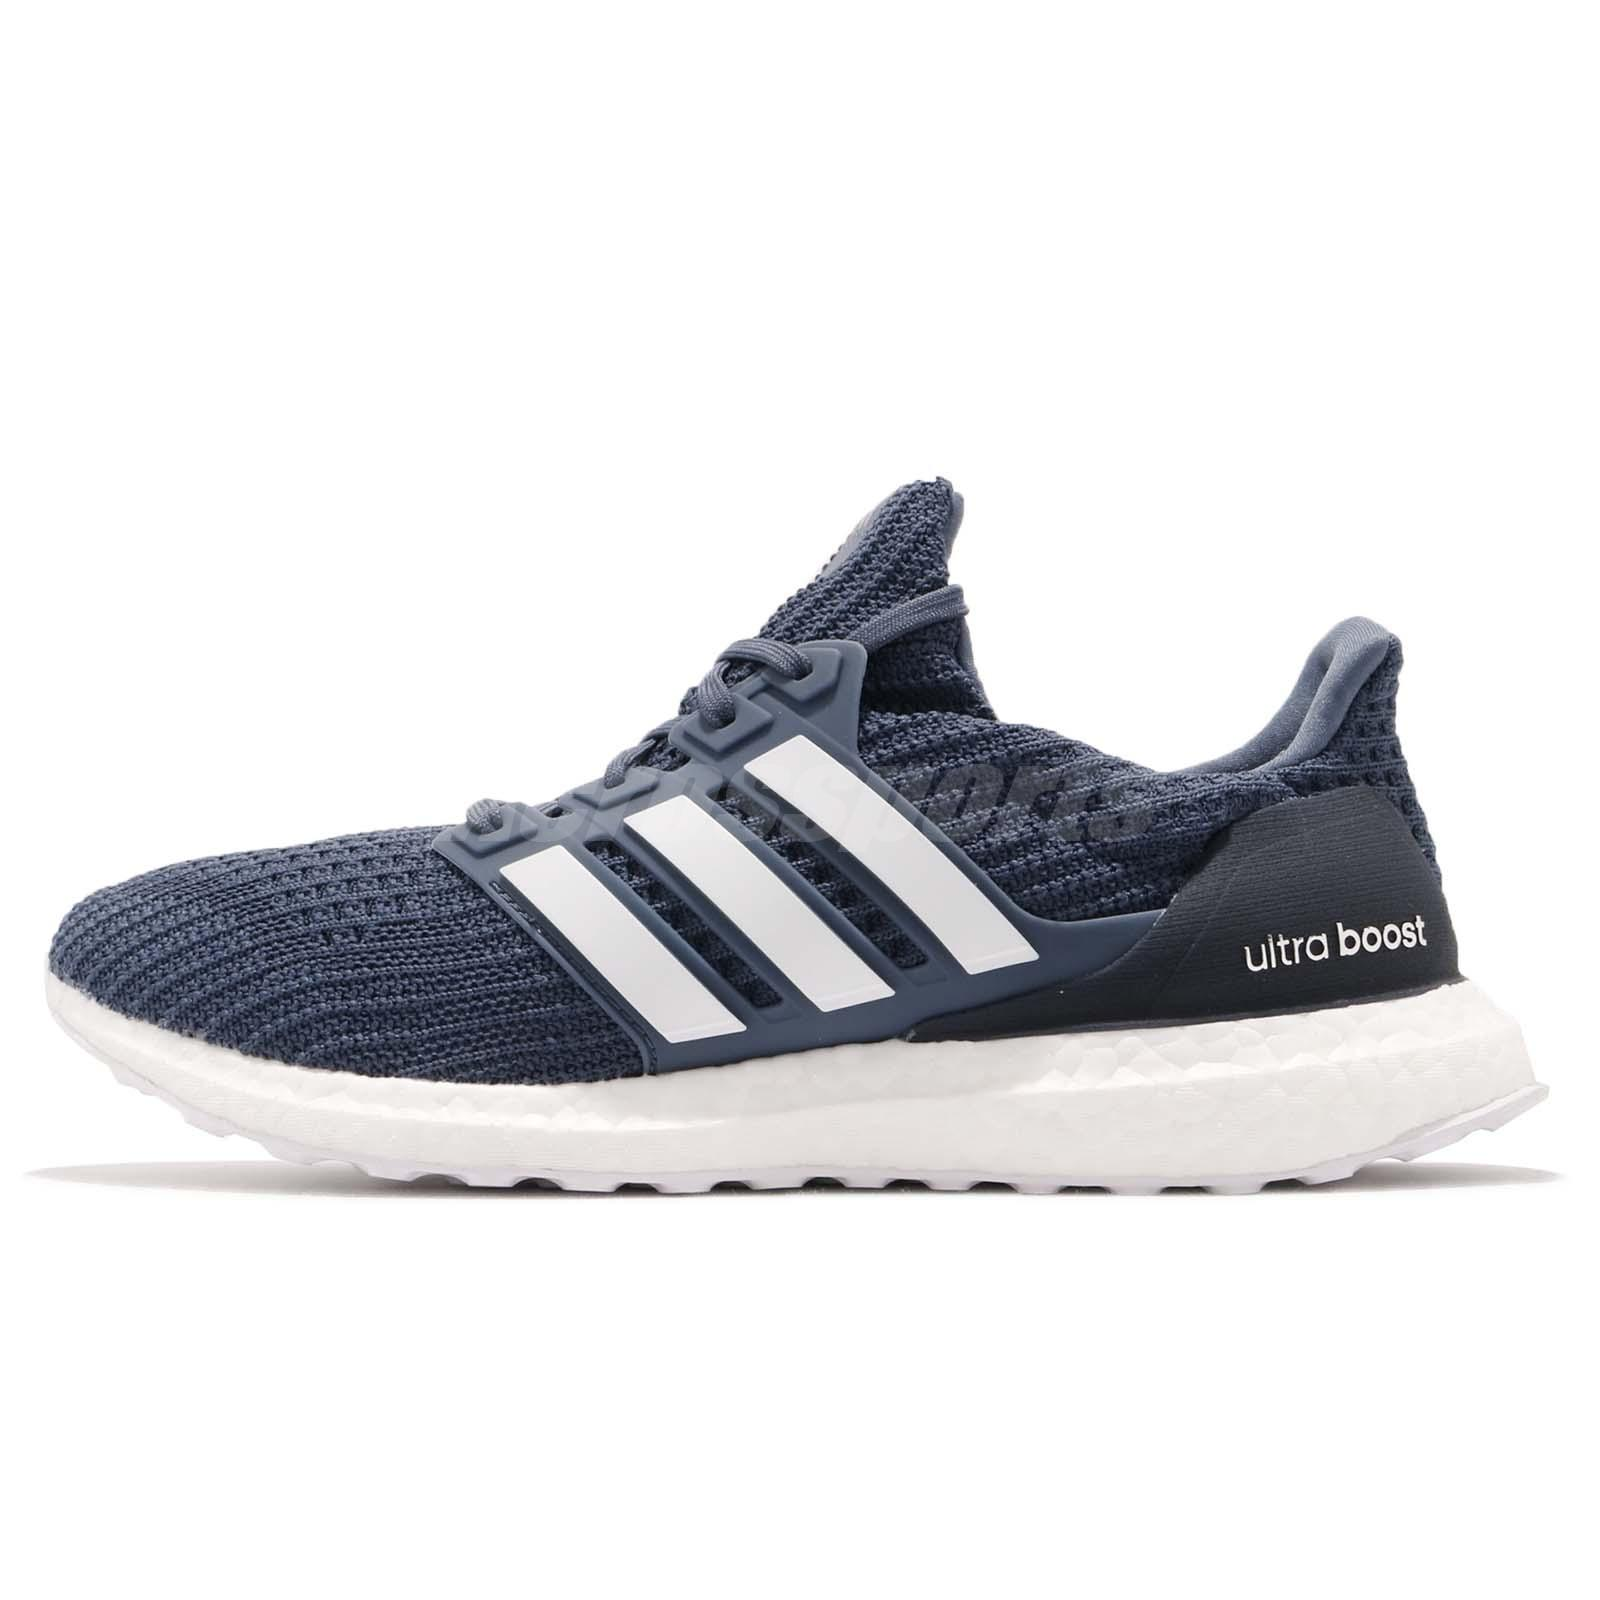 04dd2539d adidas Ultraboost 4.0 Show Your Stripes Tech Ink White Men Running Shoes  CM8113